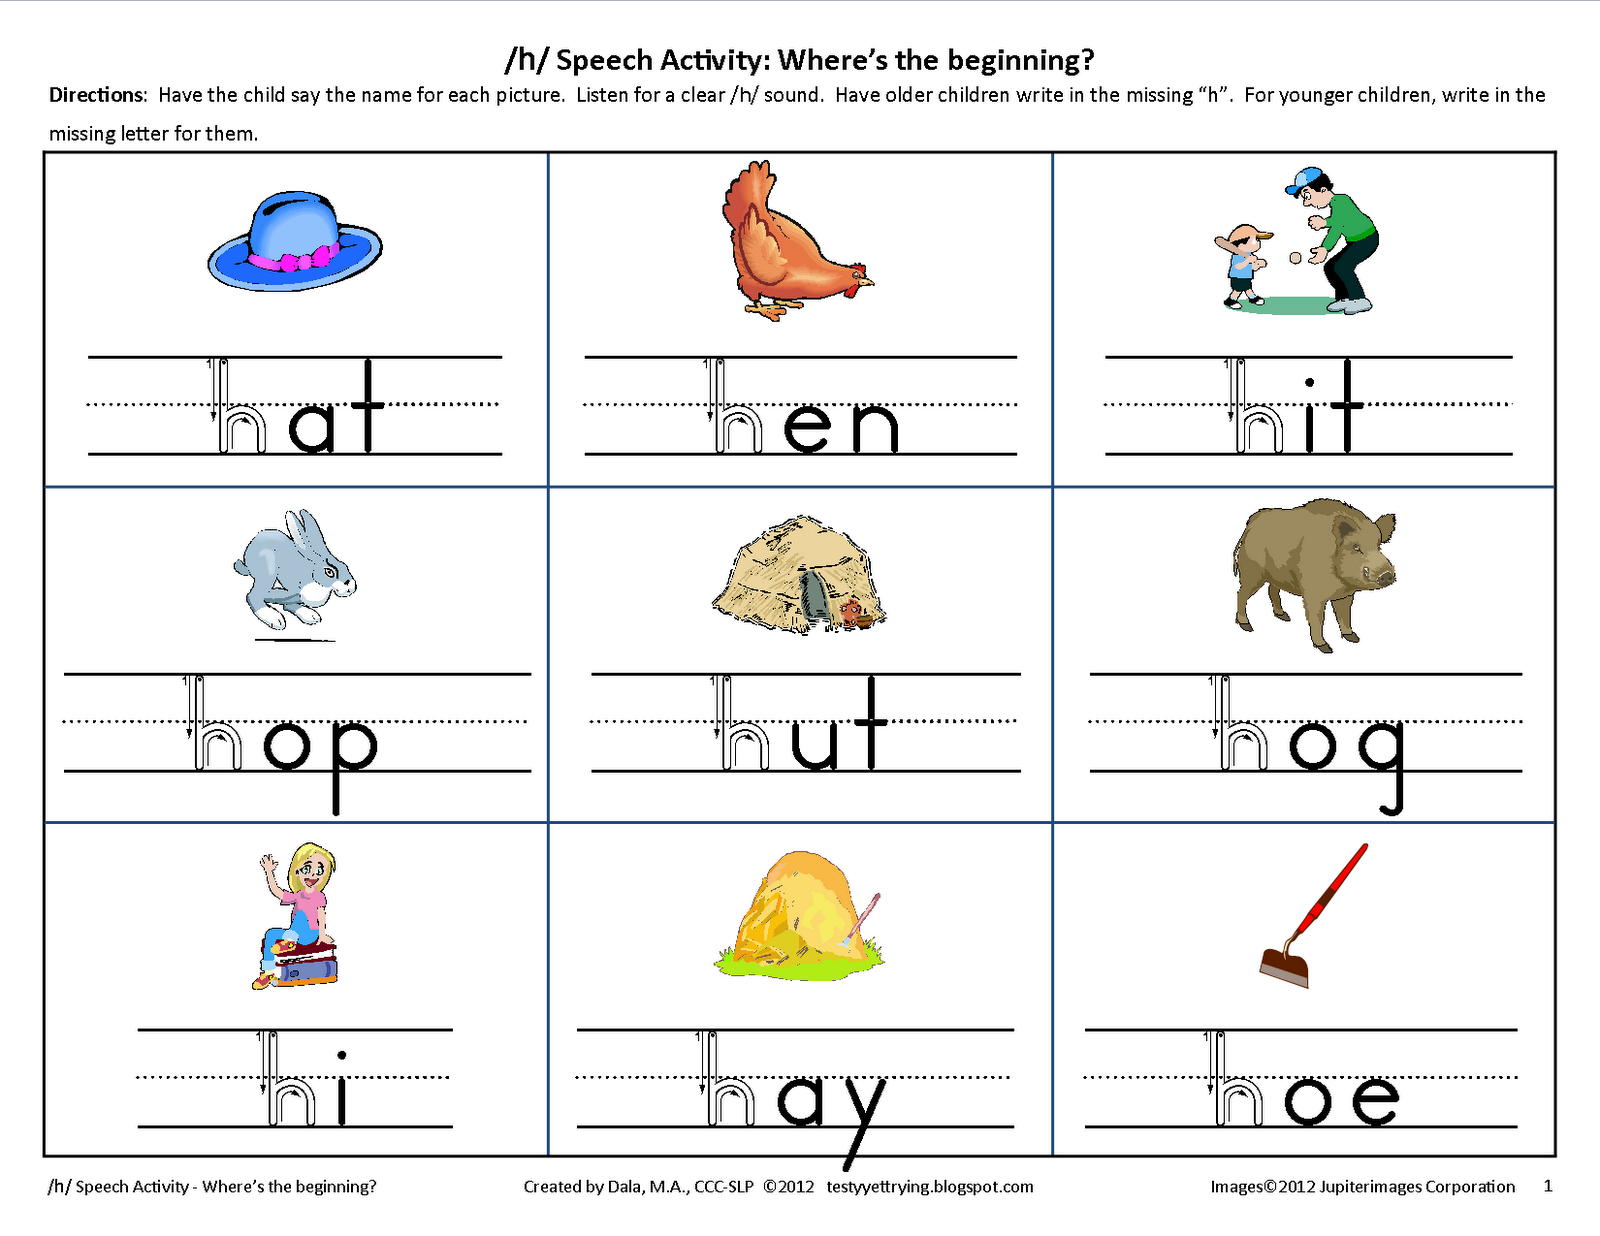 Weirdmailus  Unusual Testy Yet Trying Initial H Speech Worksheet With Excellent Make Classroom Teachers Happy Reinforce Phonics And Handwriting And Practice Speech All At The Same Time With Beautiful Preschool Adding Worksheets Also Russian Language Worksheets In Addition Free Printable Subtraction With Regrouping Worksheets And Nonfiction Text Feature Worksheet As Well As Pdf Multiplication Worksheets Additionally String Family Worksheet From Testyyettryingblogspotcom With Weirdmailus  Excellent Testy Yet Trying Initial H Speech Worksheet With Beautiful Make Classroom Teachers Happy Reinforce Phonics And Handwriting And Practice Speech All At The Same Time And Unusual Preschool Adding Worksheets Also Russian Language Worksheets In Addition Free Printable Subtraction With Regrouping Worksheets From Testyyettryingblogspotcom